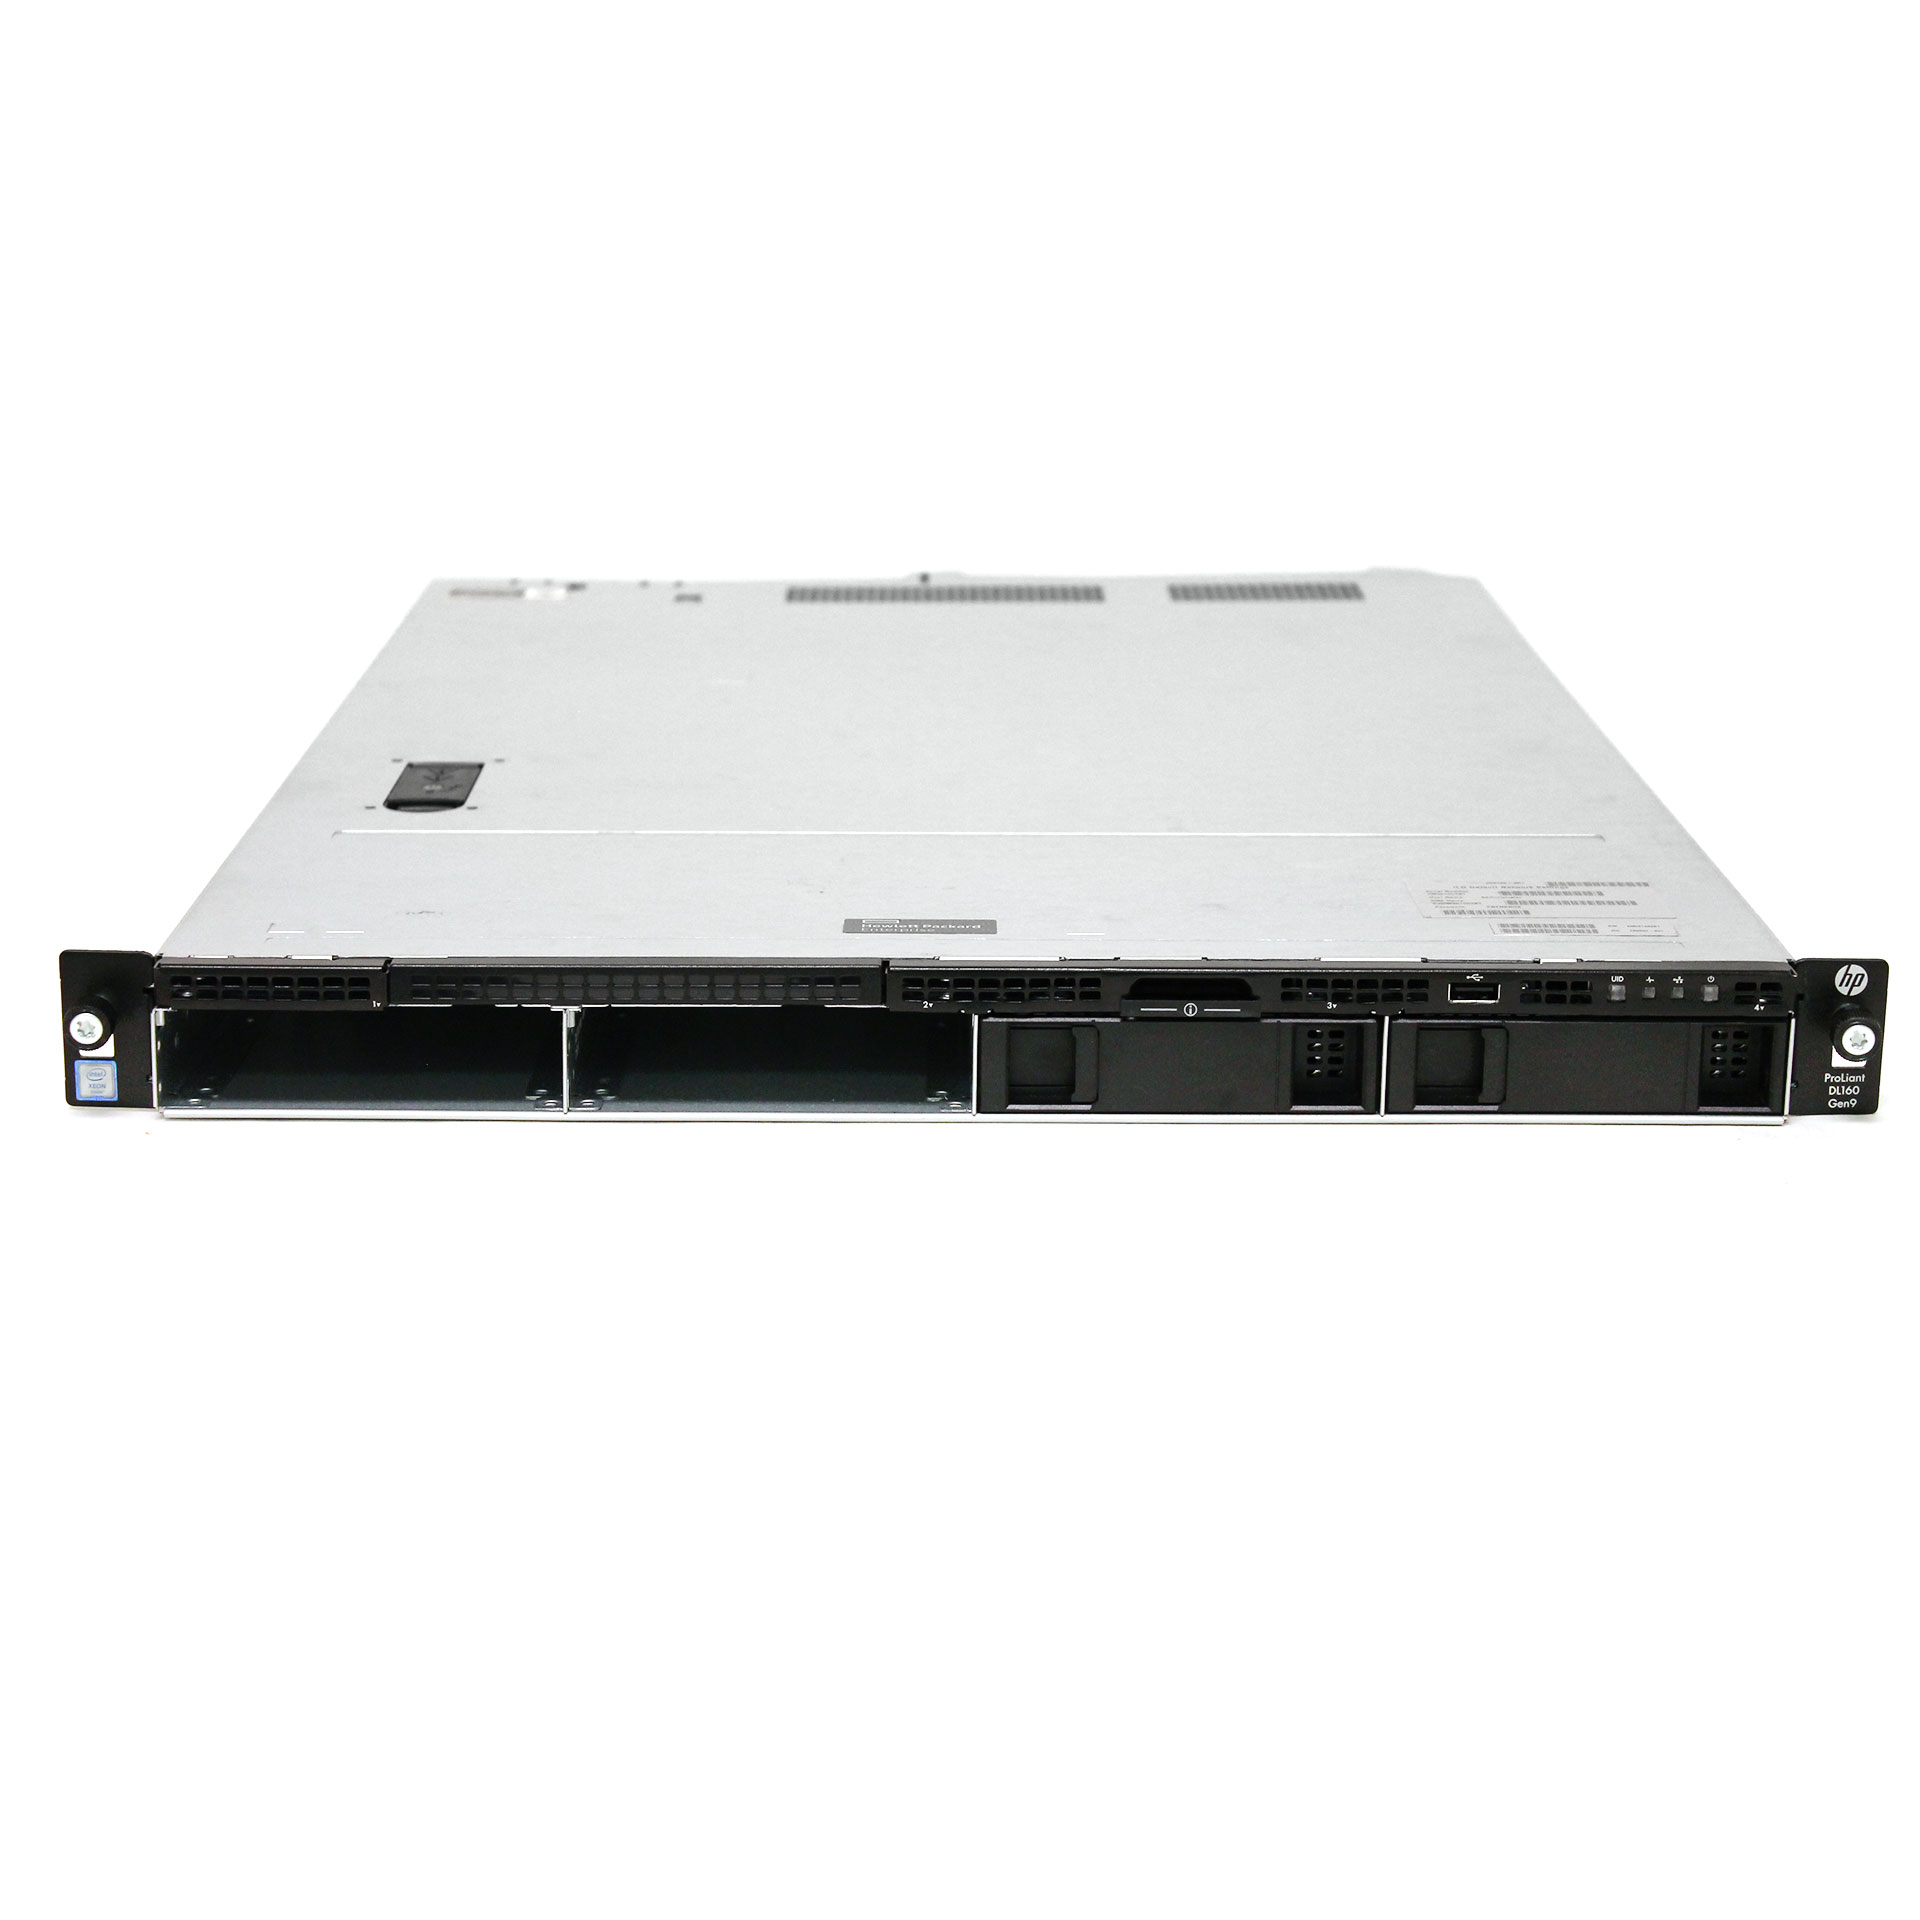 HP ProLiant DL160 Gen8 Server E5-2620 2GHz 8GB RAM 662083-001